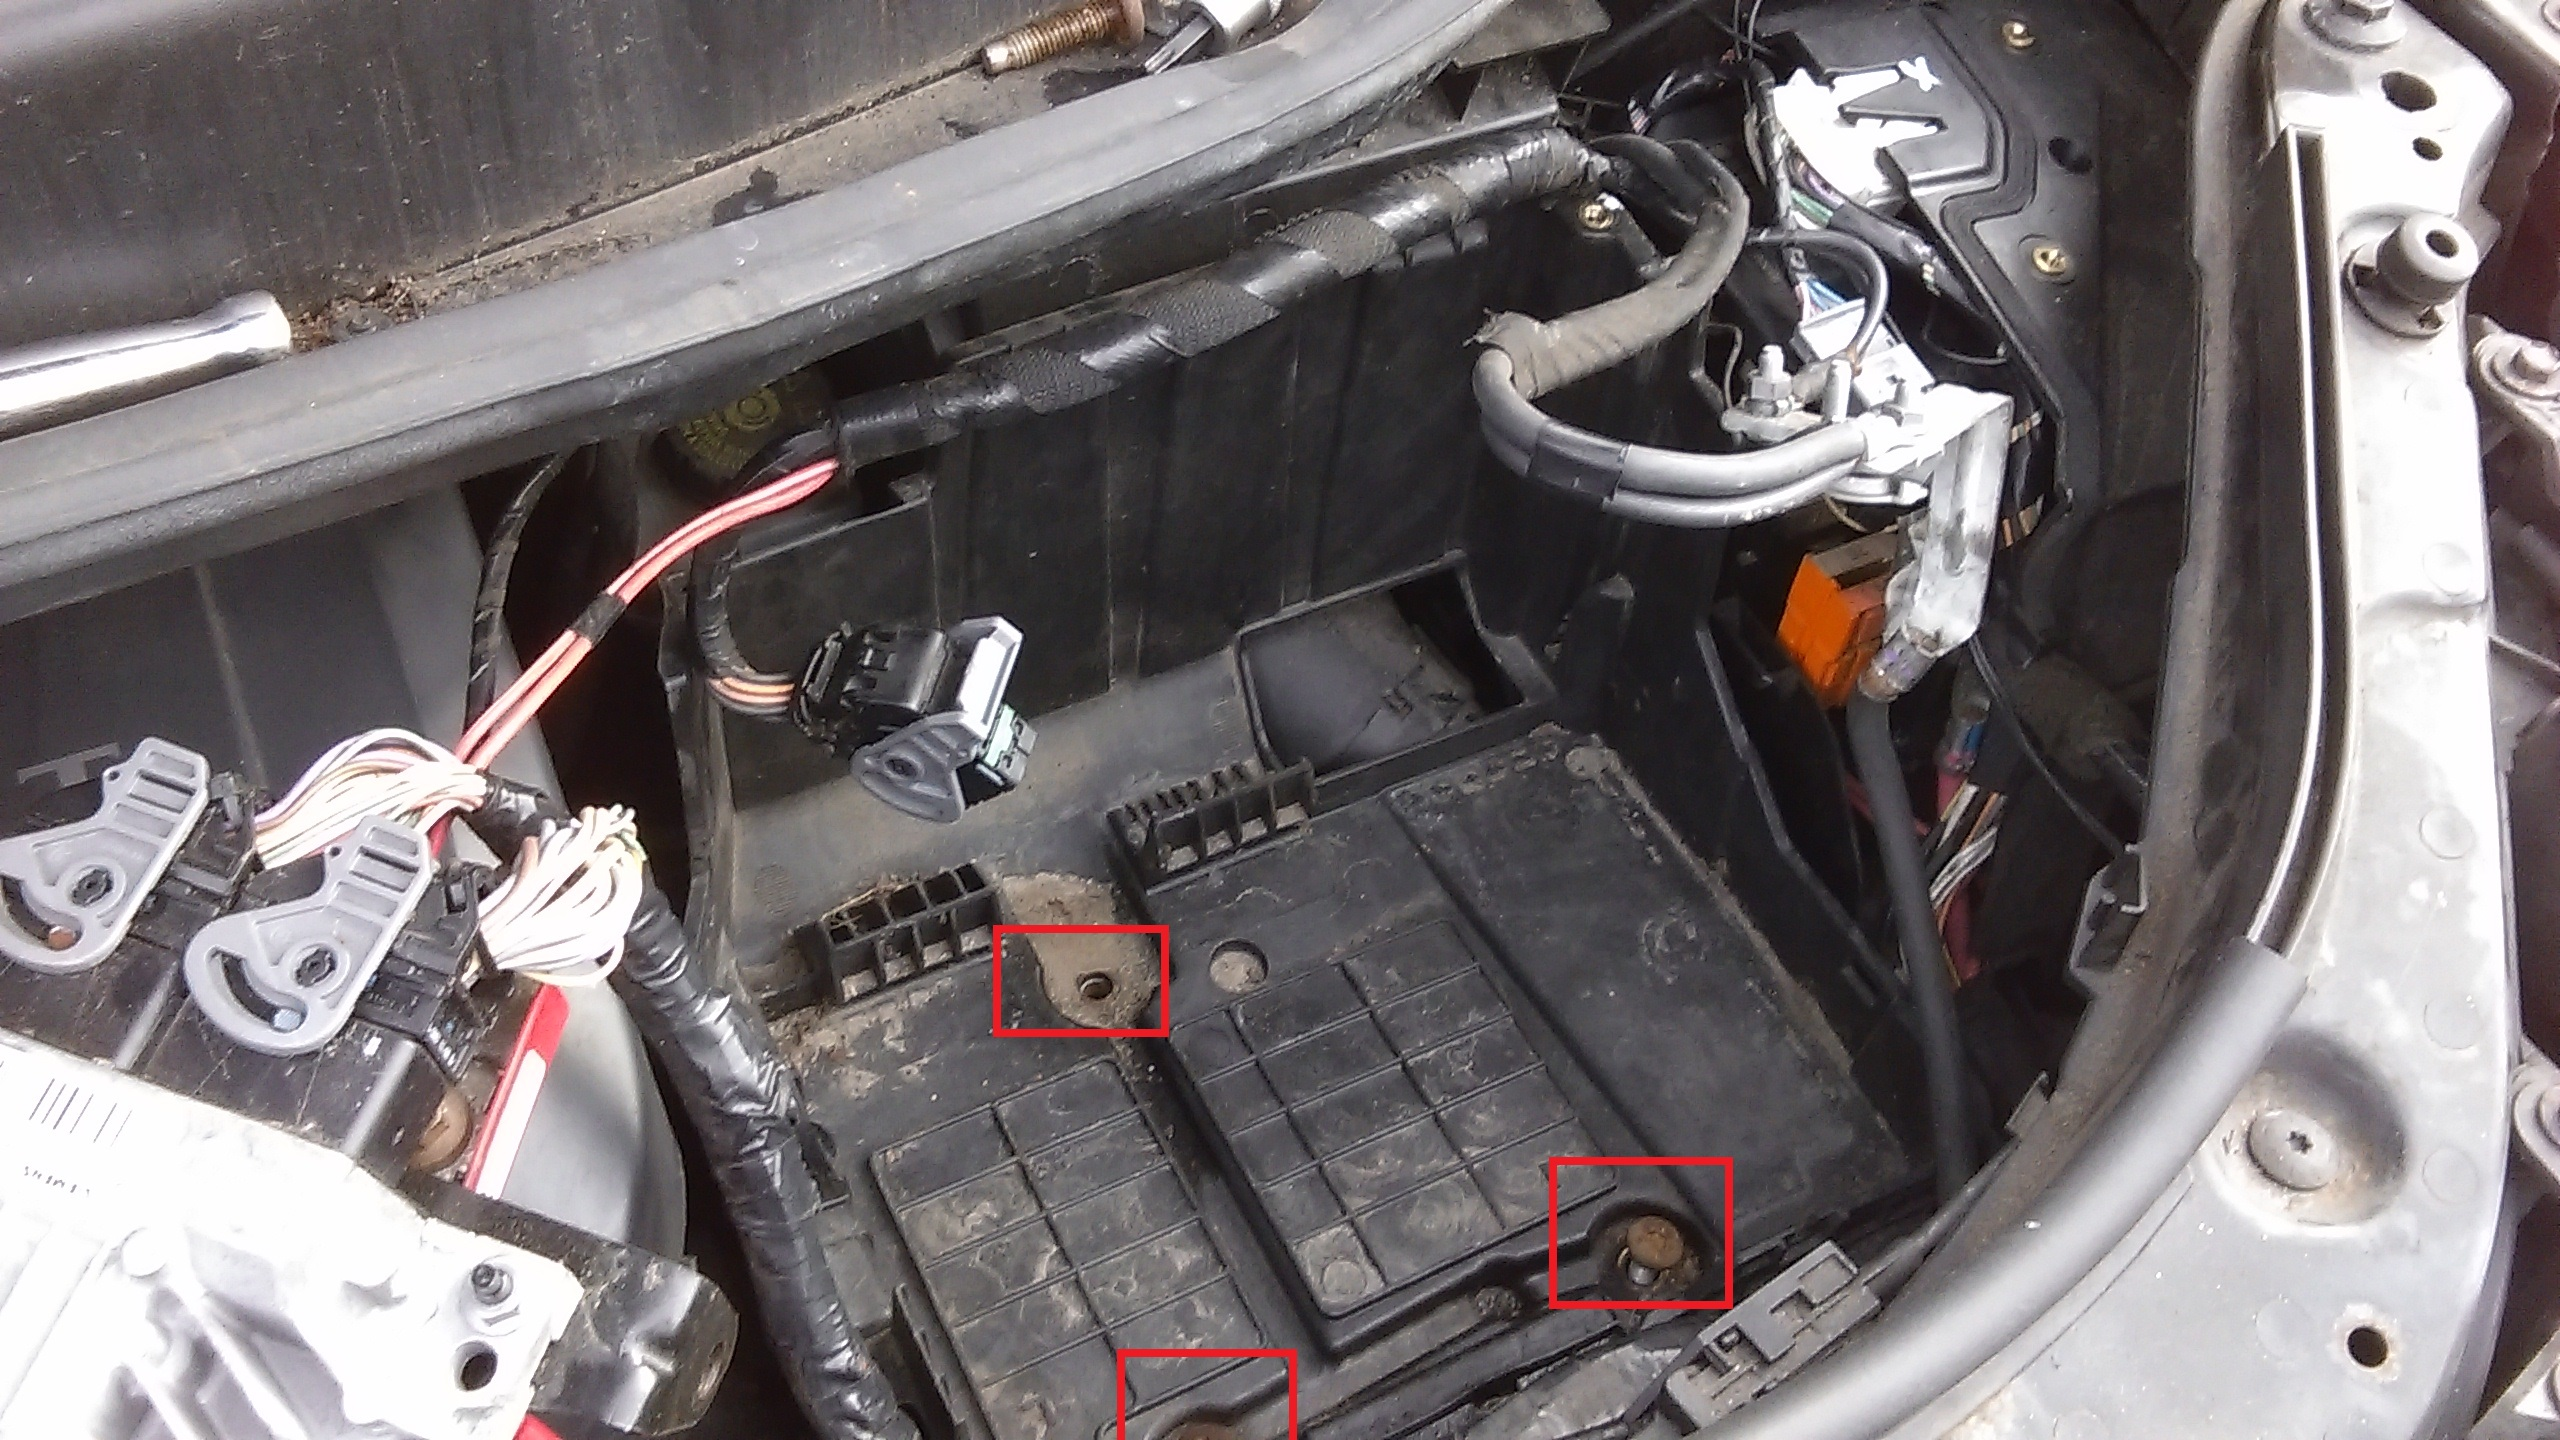 renault grand scenic engine fusebox access javalins s blog the fuse box will now carefully pull out into the battery tray space unclip the connectors on top you ll need to undo the bolt holding the three live feed